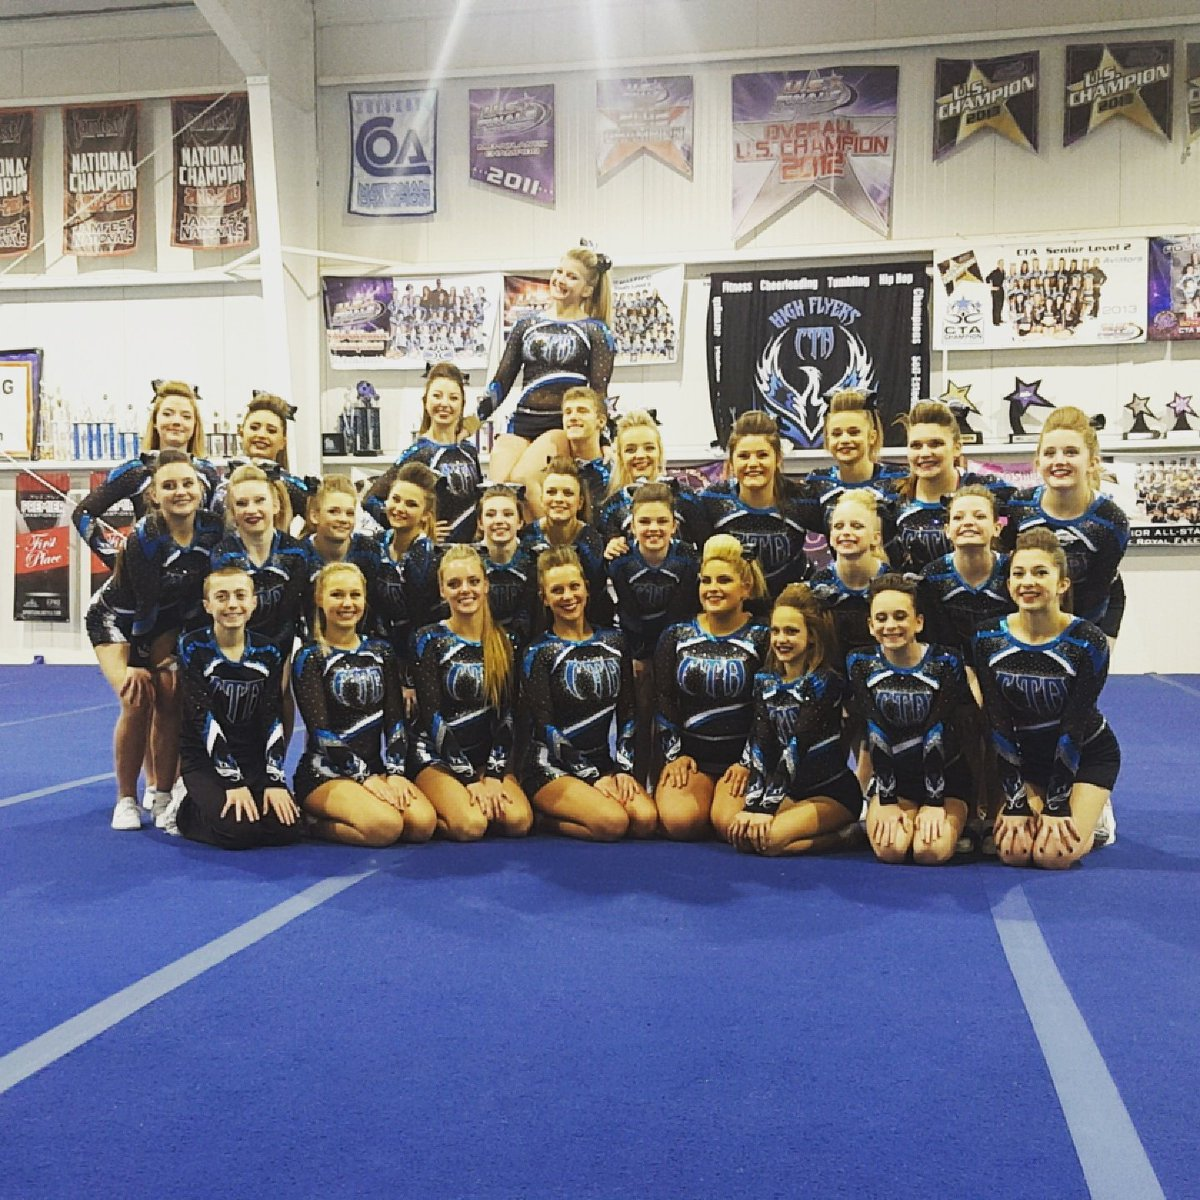 Lady Legacy & Mach5 are ready! Competition season starts in a week! #rebelreveals @RoadtotheSummit @RebelAthletic https://t.co/ALK8wtrjNa